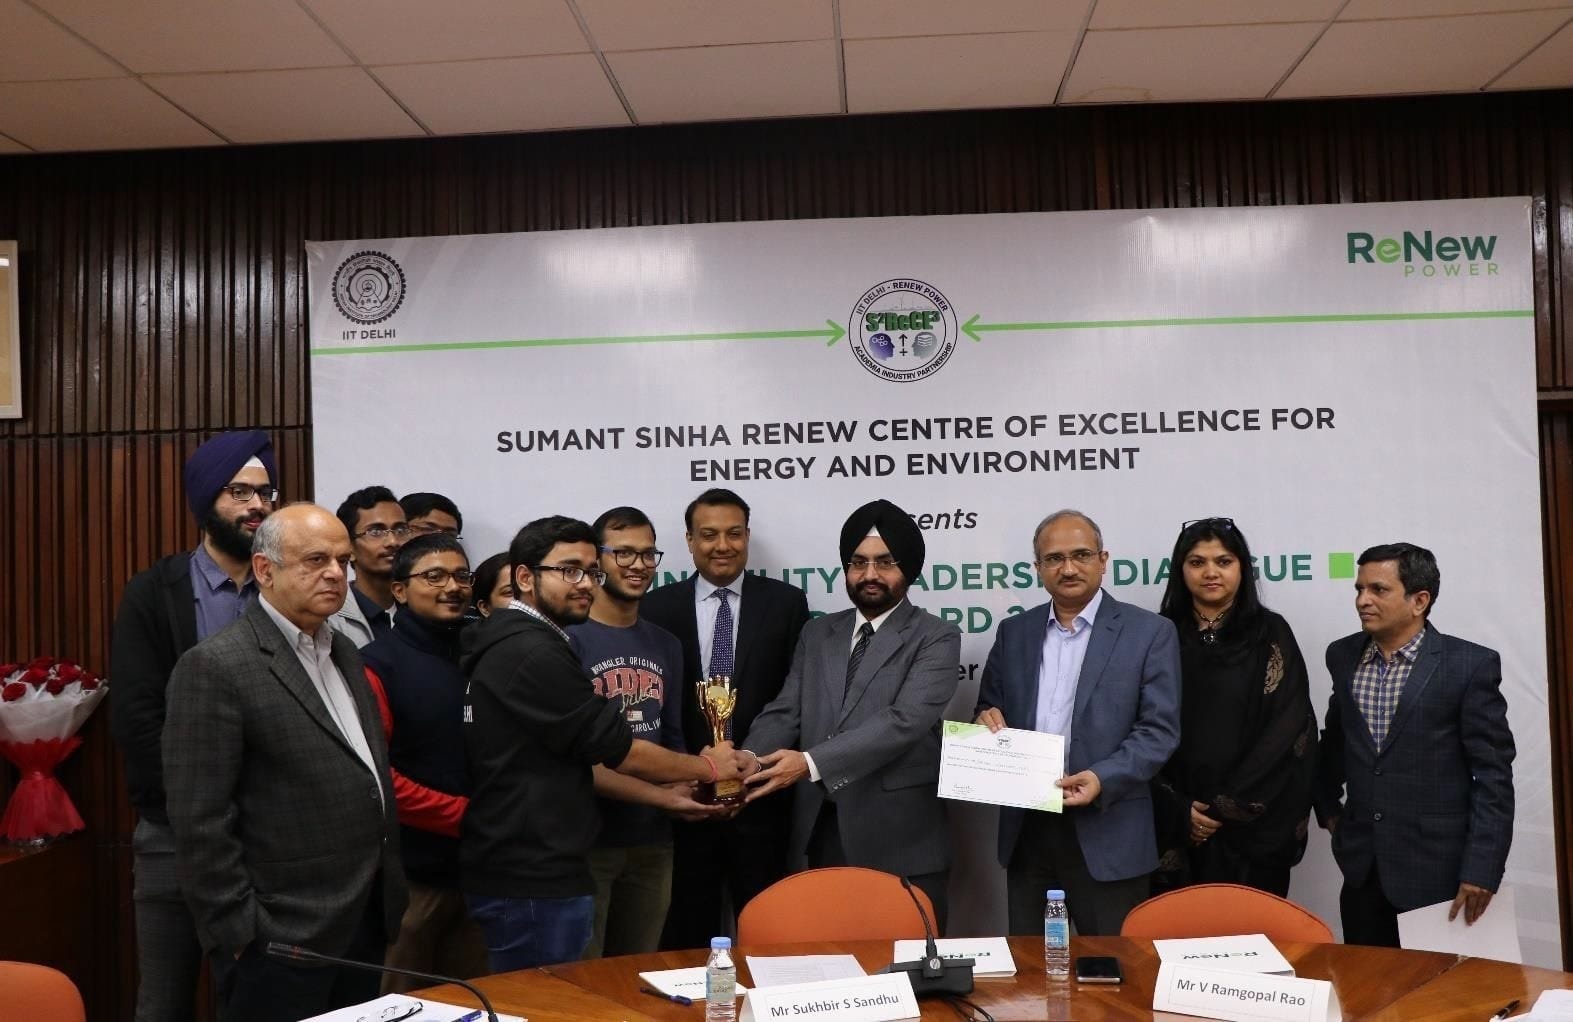 Sumant Sinha Sustainability Leadership Award Winners Felicitated at IIT Delhi